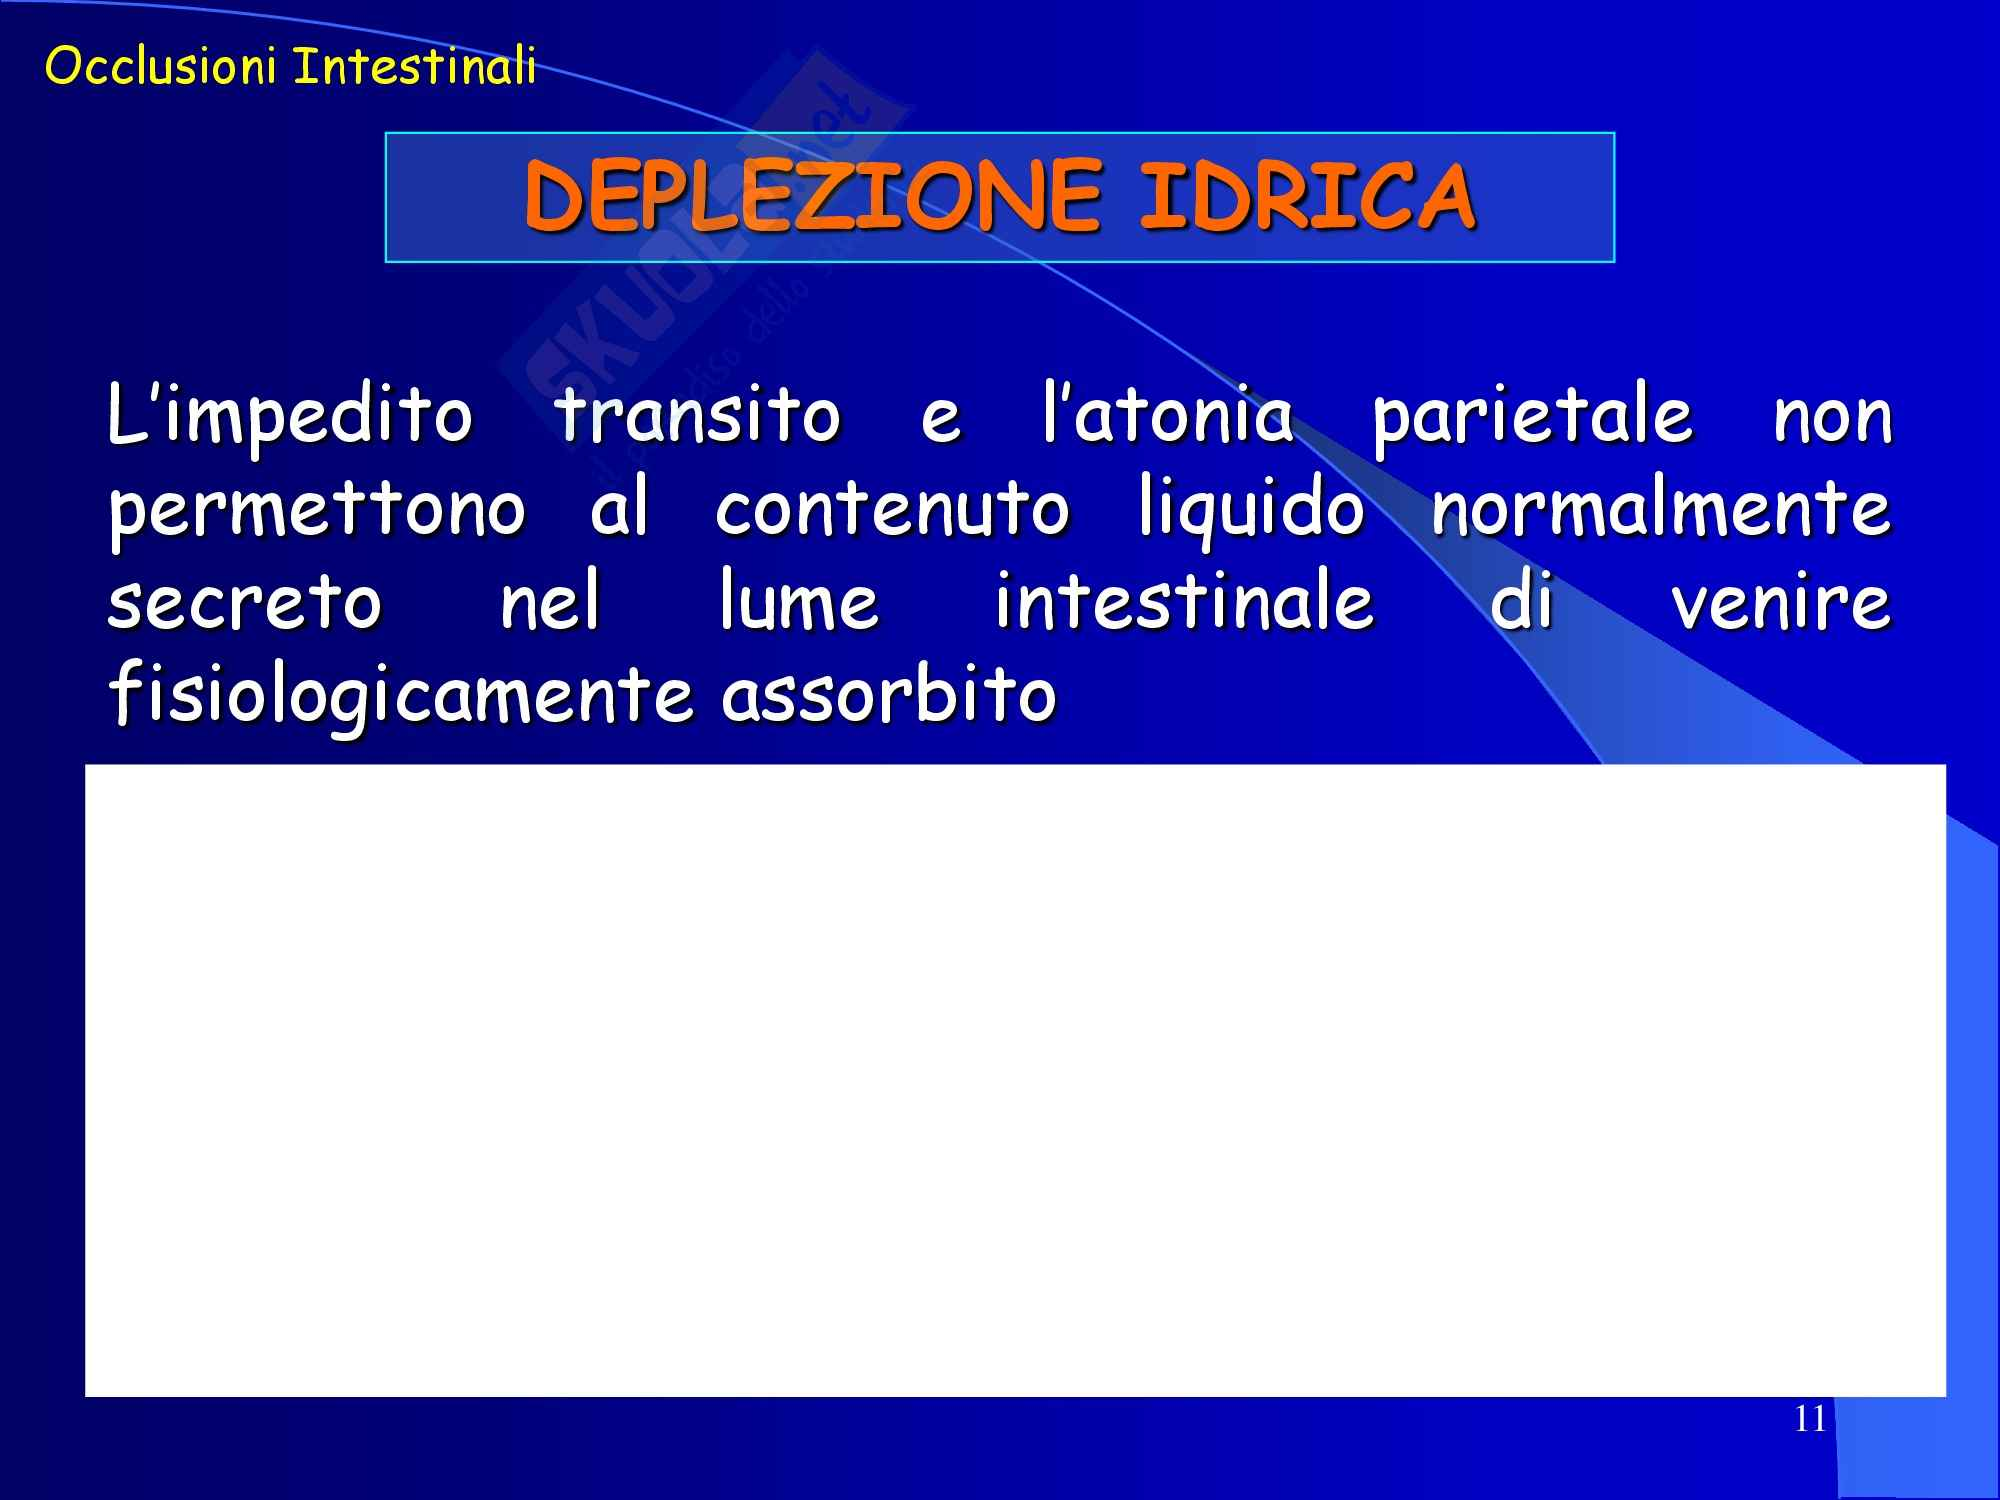 Occlusione Intestinale - parte 2 Pag. 11